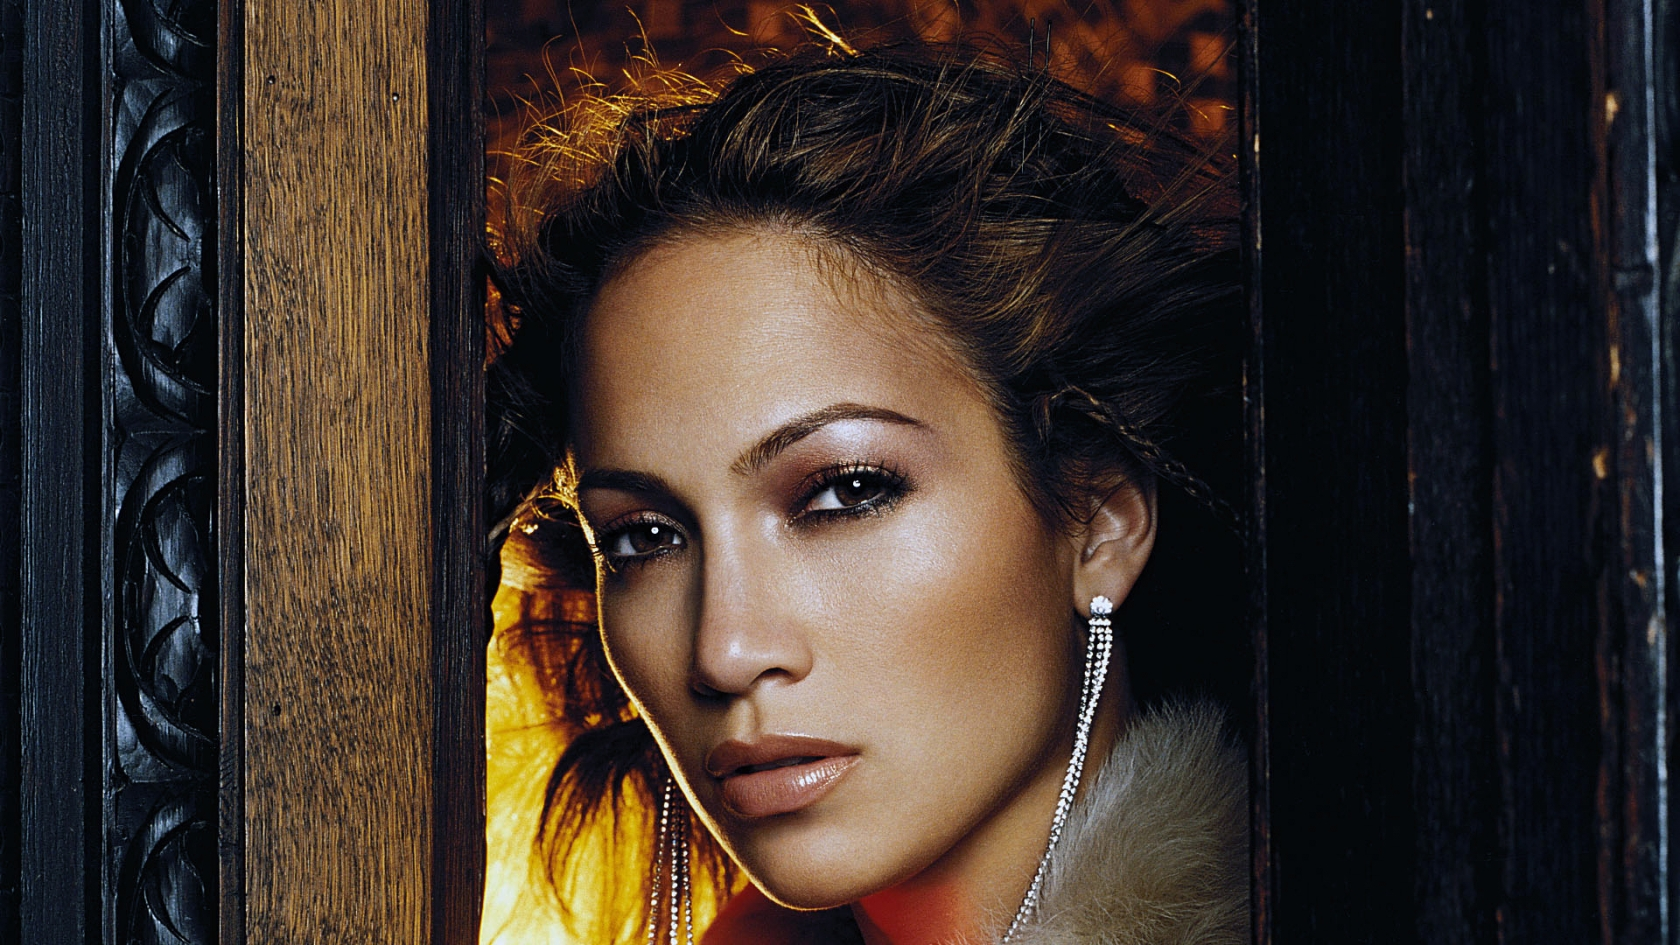 J.Lo for 1680 x 945 HDTV resolution